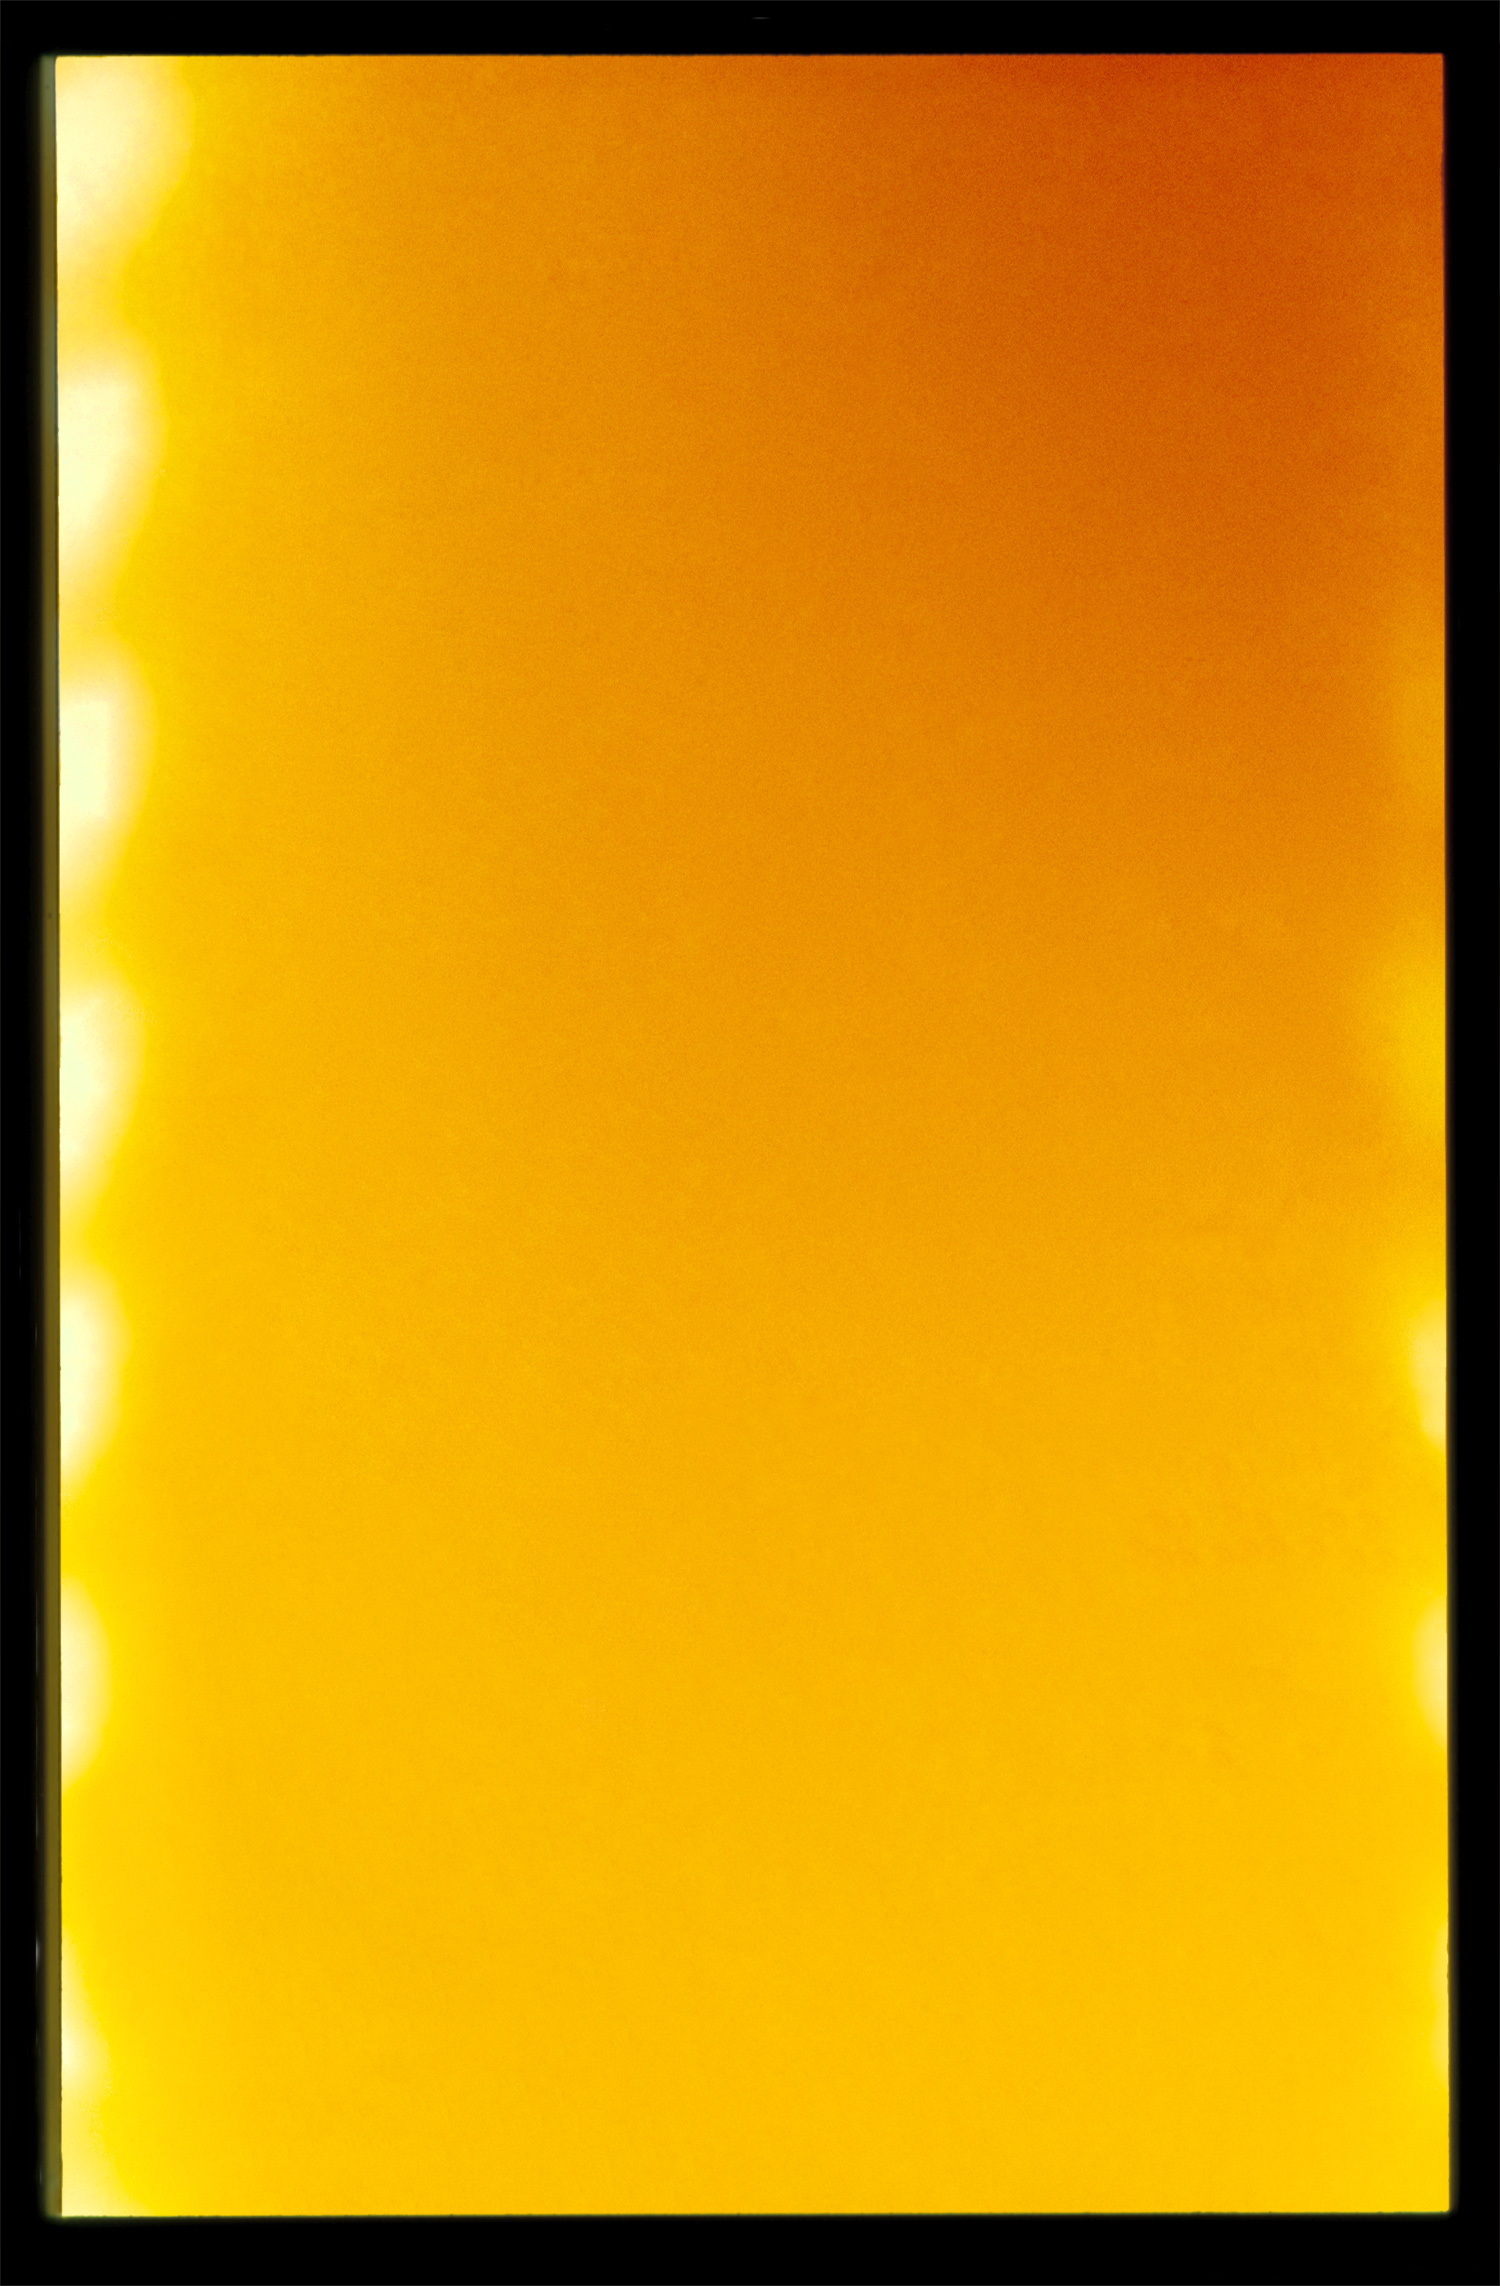 Endings - Yellow - Kodak Safety, No.21. 30/11/1983